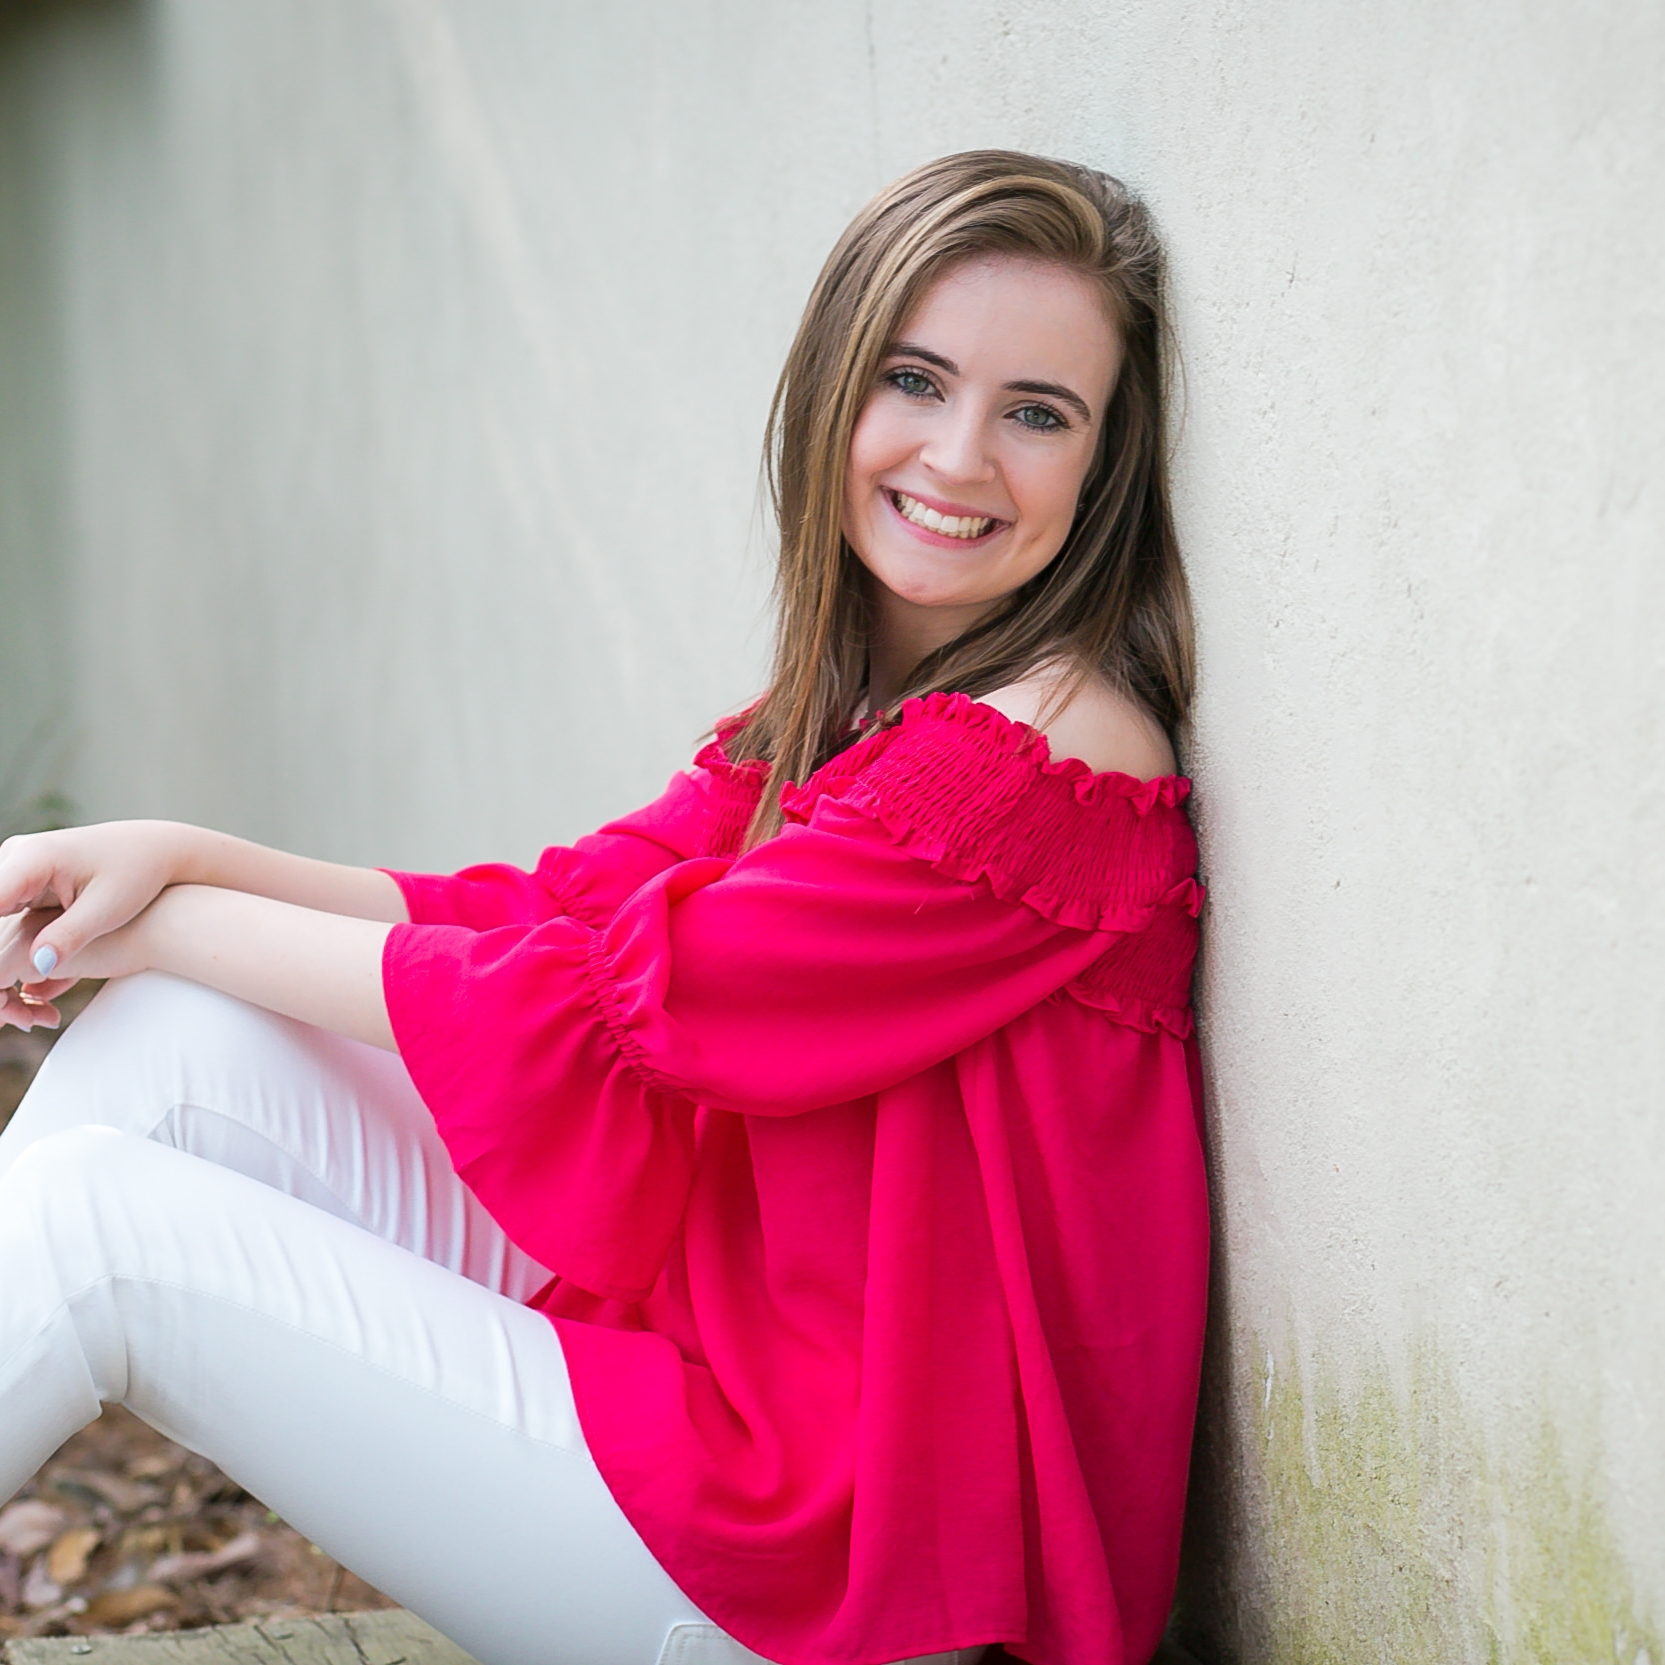 Thank you again for taking such amazing senior pictures – we love them all! I had so much fun during the whole process!